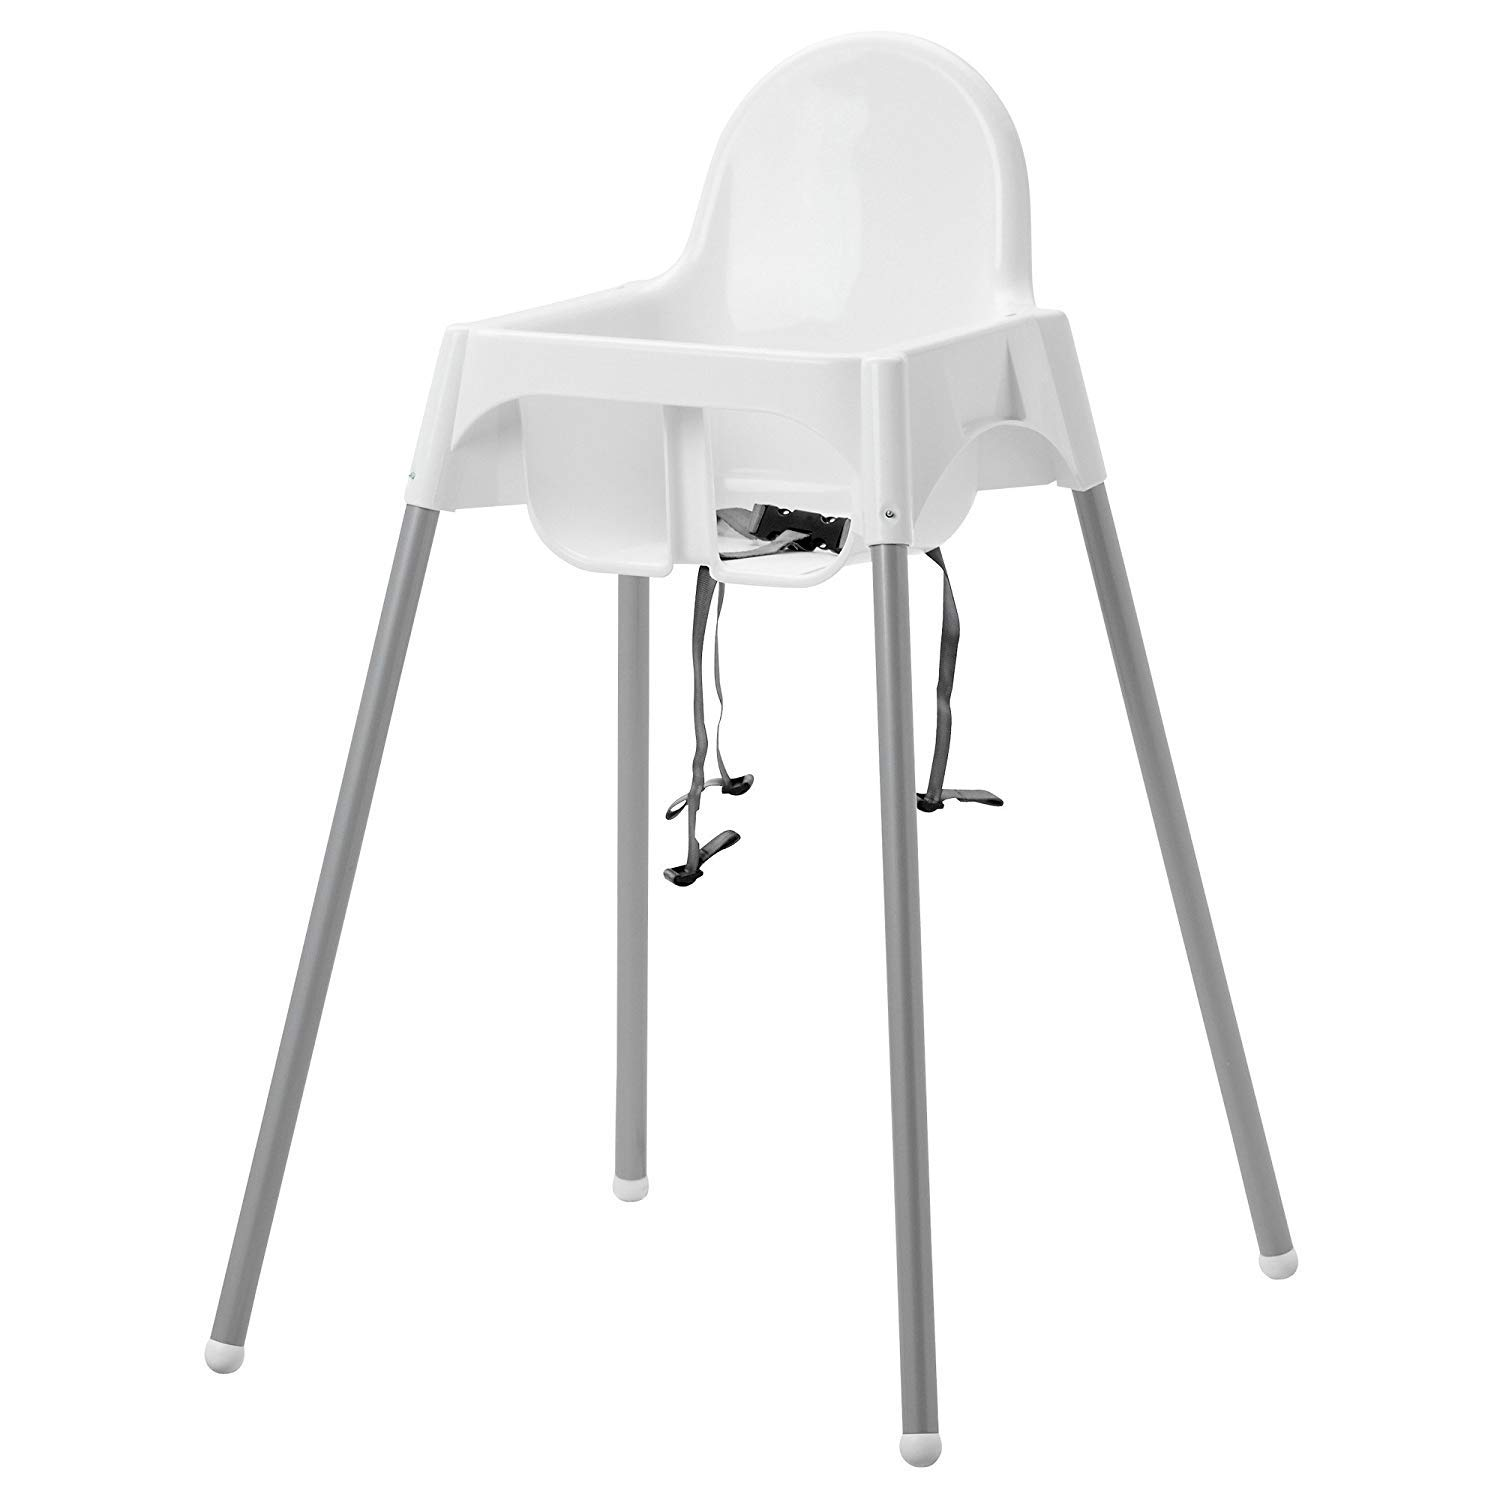 Cool Ikeas Antilop Highchair With Safety Belt White Silver Color And Antilop Highchair White Short Links Chair Design For Home Short Linksinfo